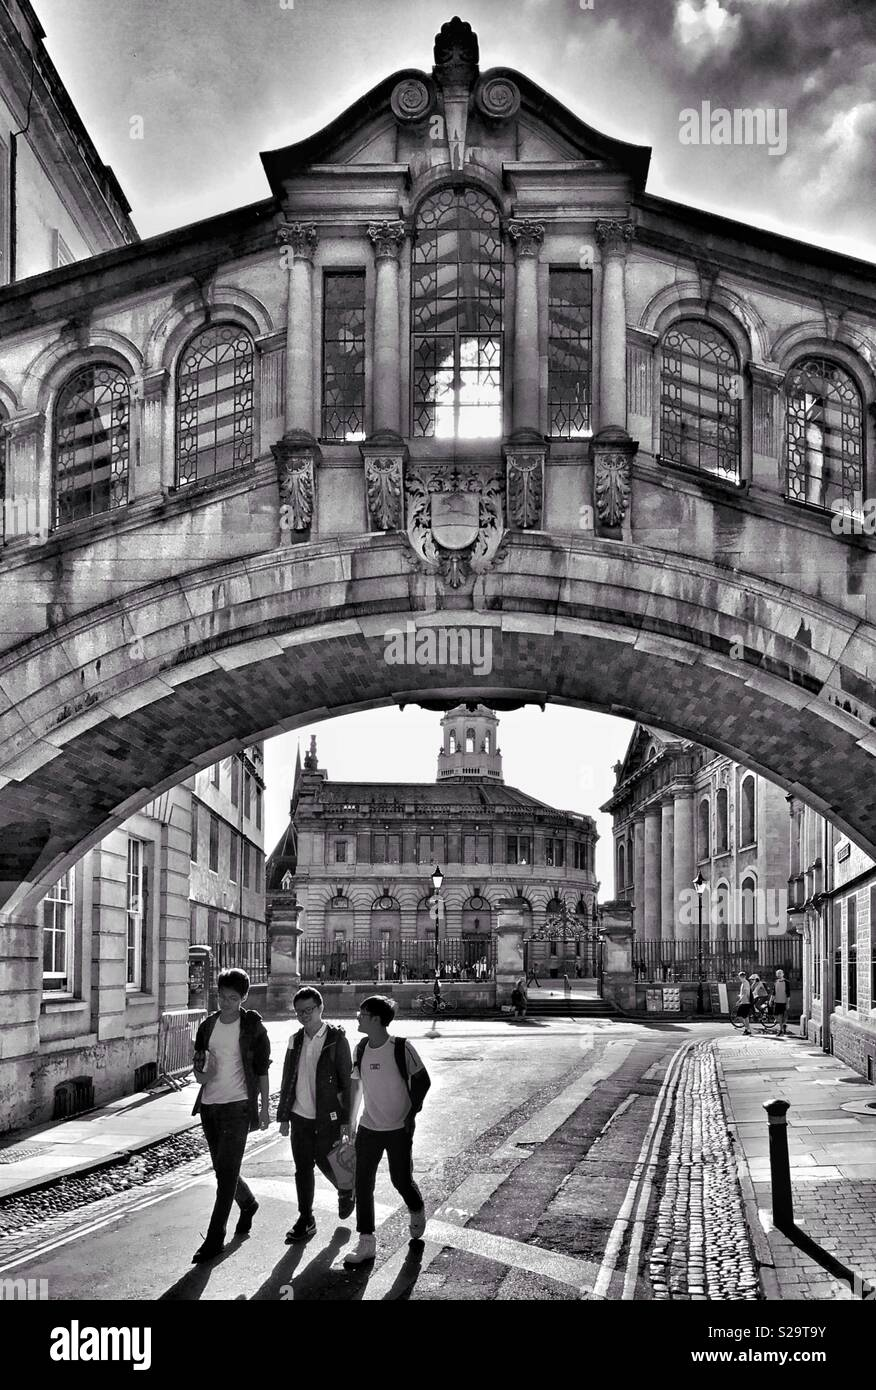 "Three friends walk underneath the famous ""Bridge Of Sighs"" in Oxford, England. The famous Hertford Bridge landmark links the Old & New Quadrangles Of Hertford College. Photo Credit - © COLIN HOSKINS. - Stock Image"